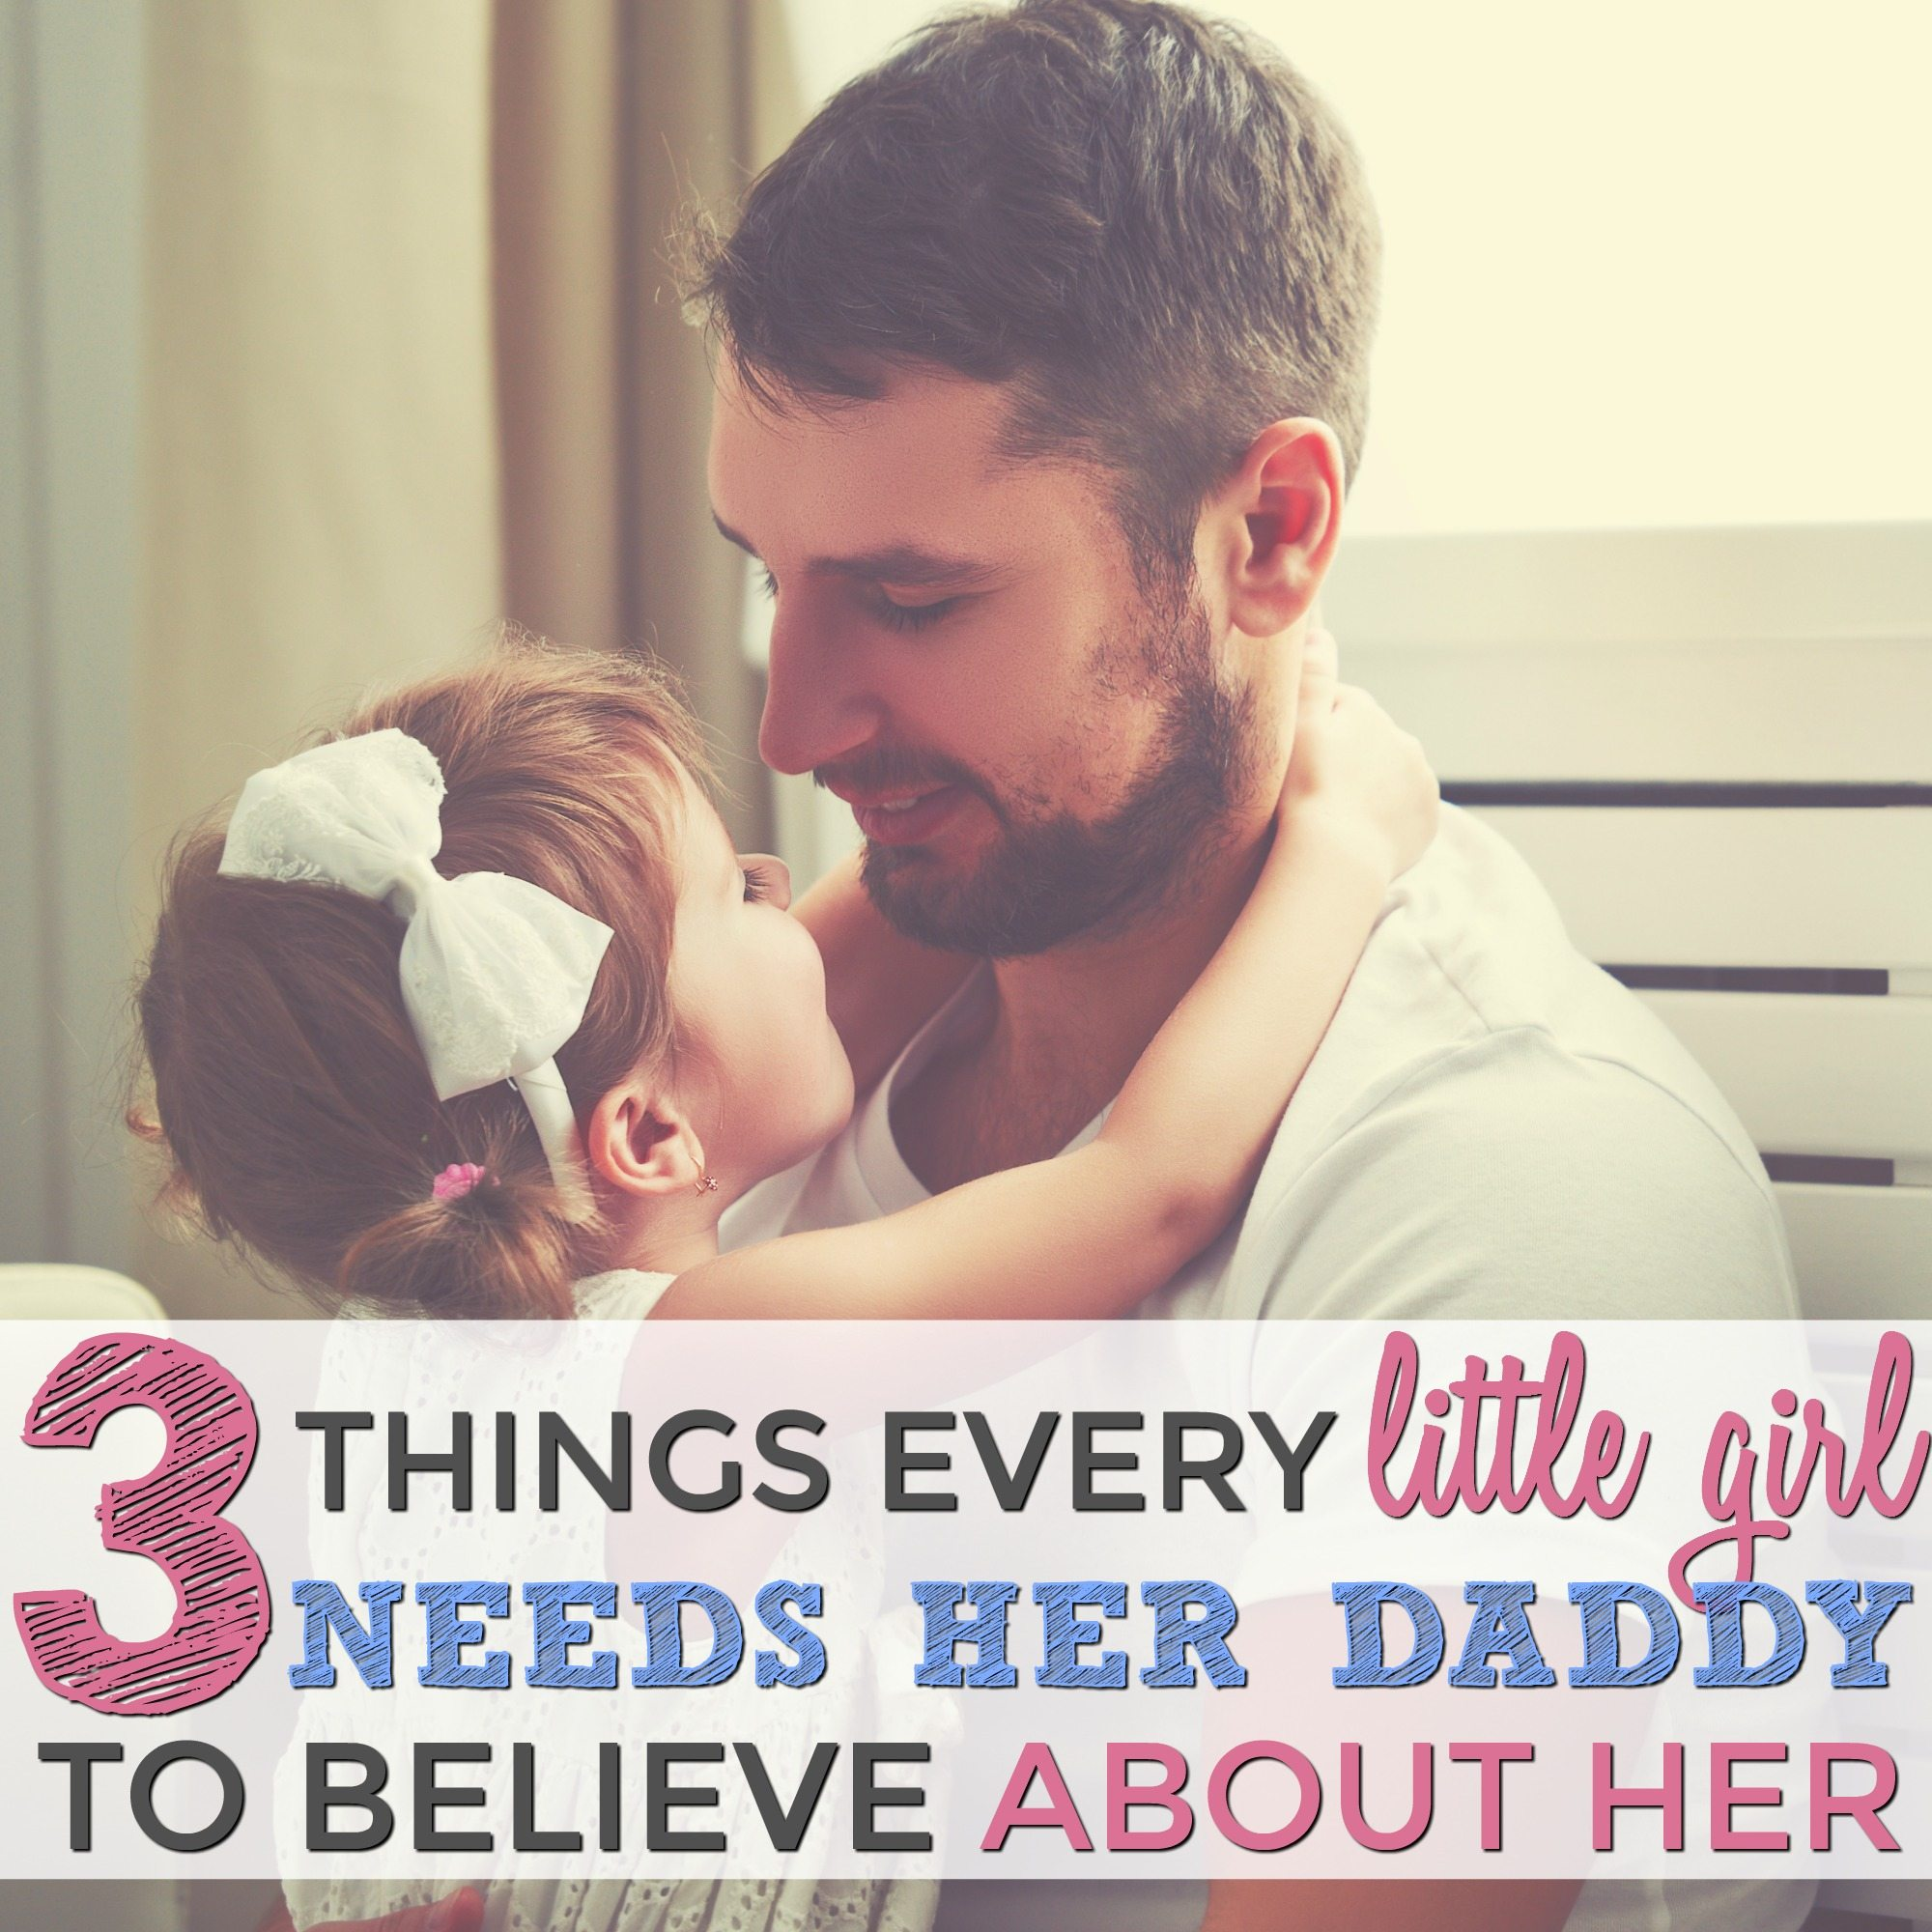 3 Things Every Little Girl Needs Her Daddy to Believe About Her